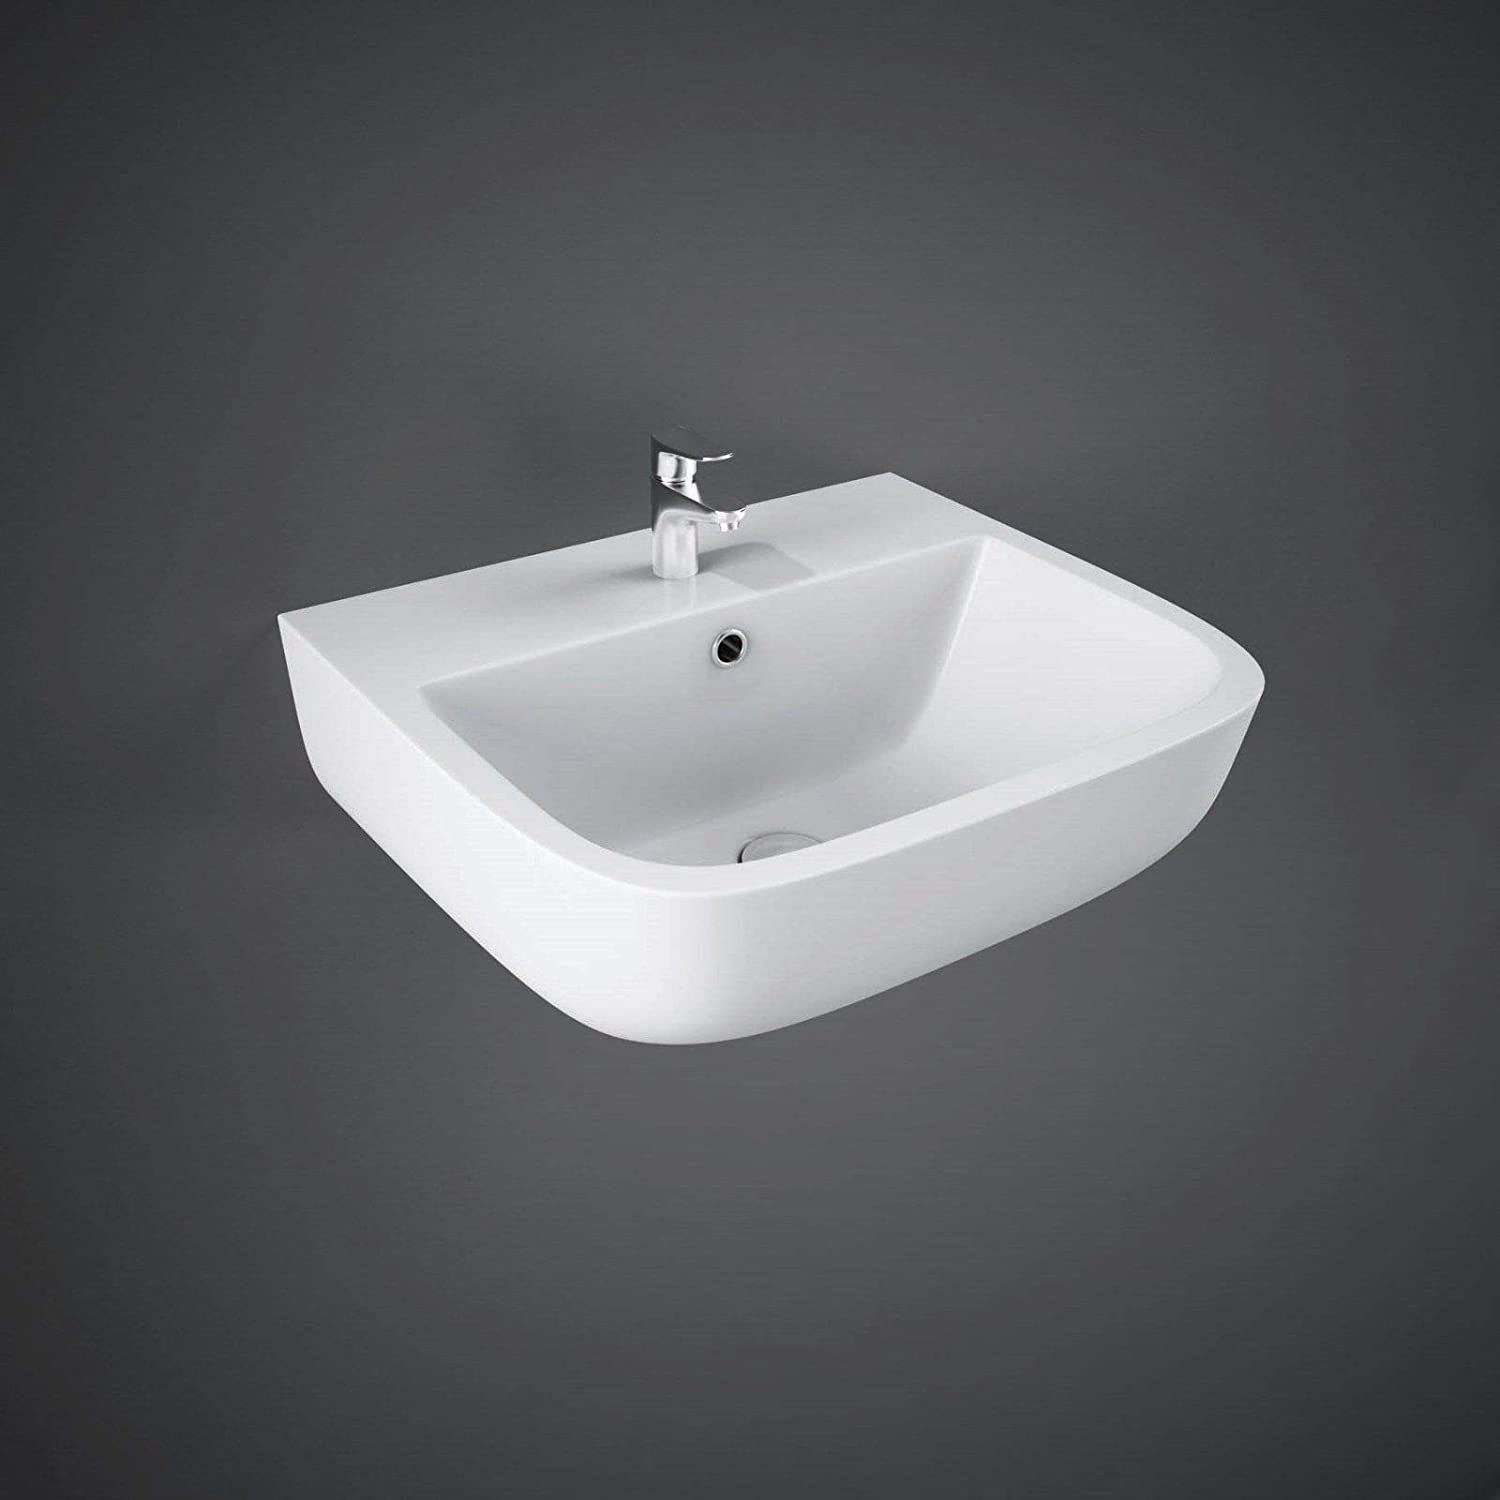 RAK Series 600 Basin 400mm Wide Clockroom Wall Hung Basin 1 Tap Hole Basin Rak